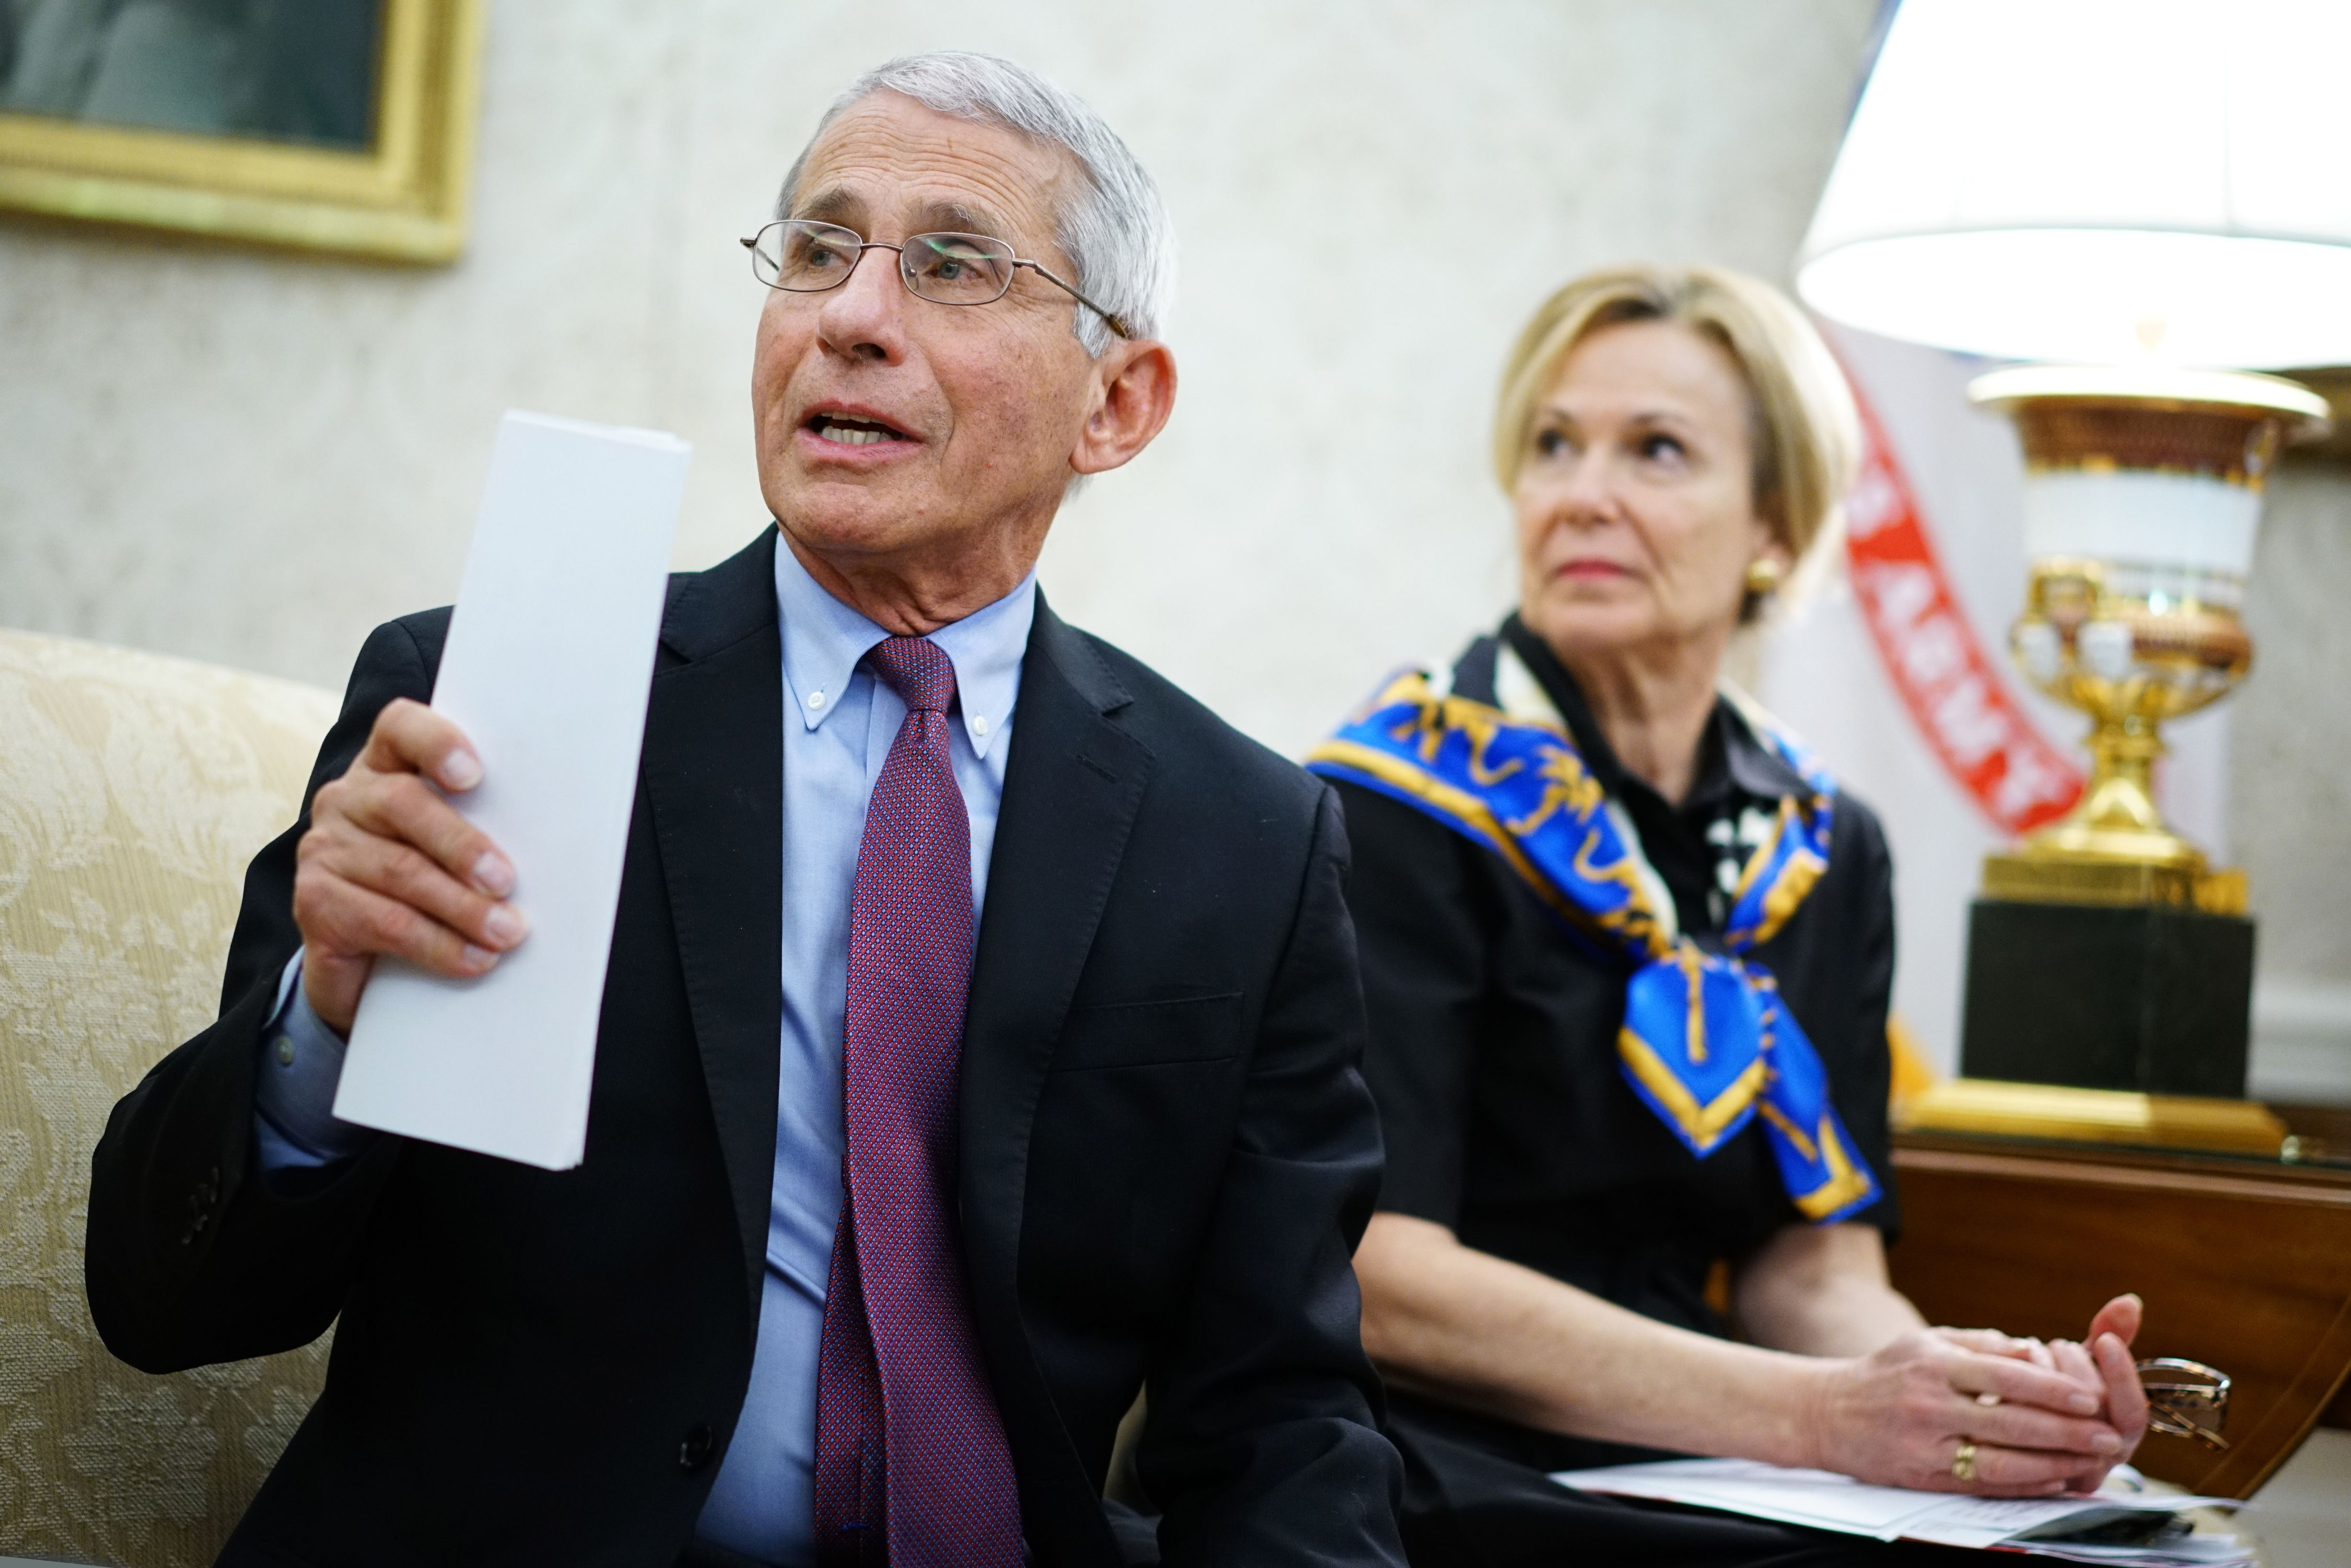 Dr. Anthony Fauci (L), director of the National Institute of Allergy and Infectious Diseases speaks next to Response coordinator for White House Coronavirus Task Force Deborah Birx, during a meeting with US President Donald Trump and Louisiana Governor John Bel Edwards D-LA in the Oval Office of the White House in Washington, DC on April 29, 2020. (Photo by MANDEL NGAN/AFP via Getty Images)